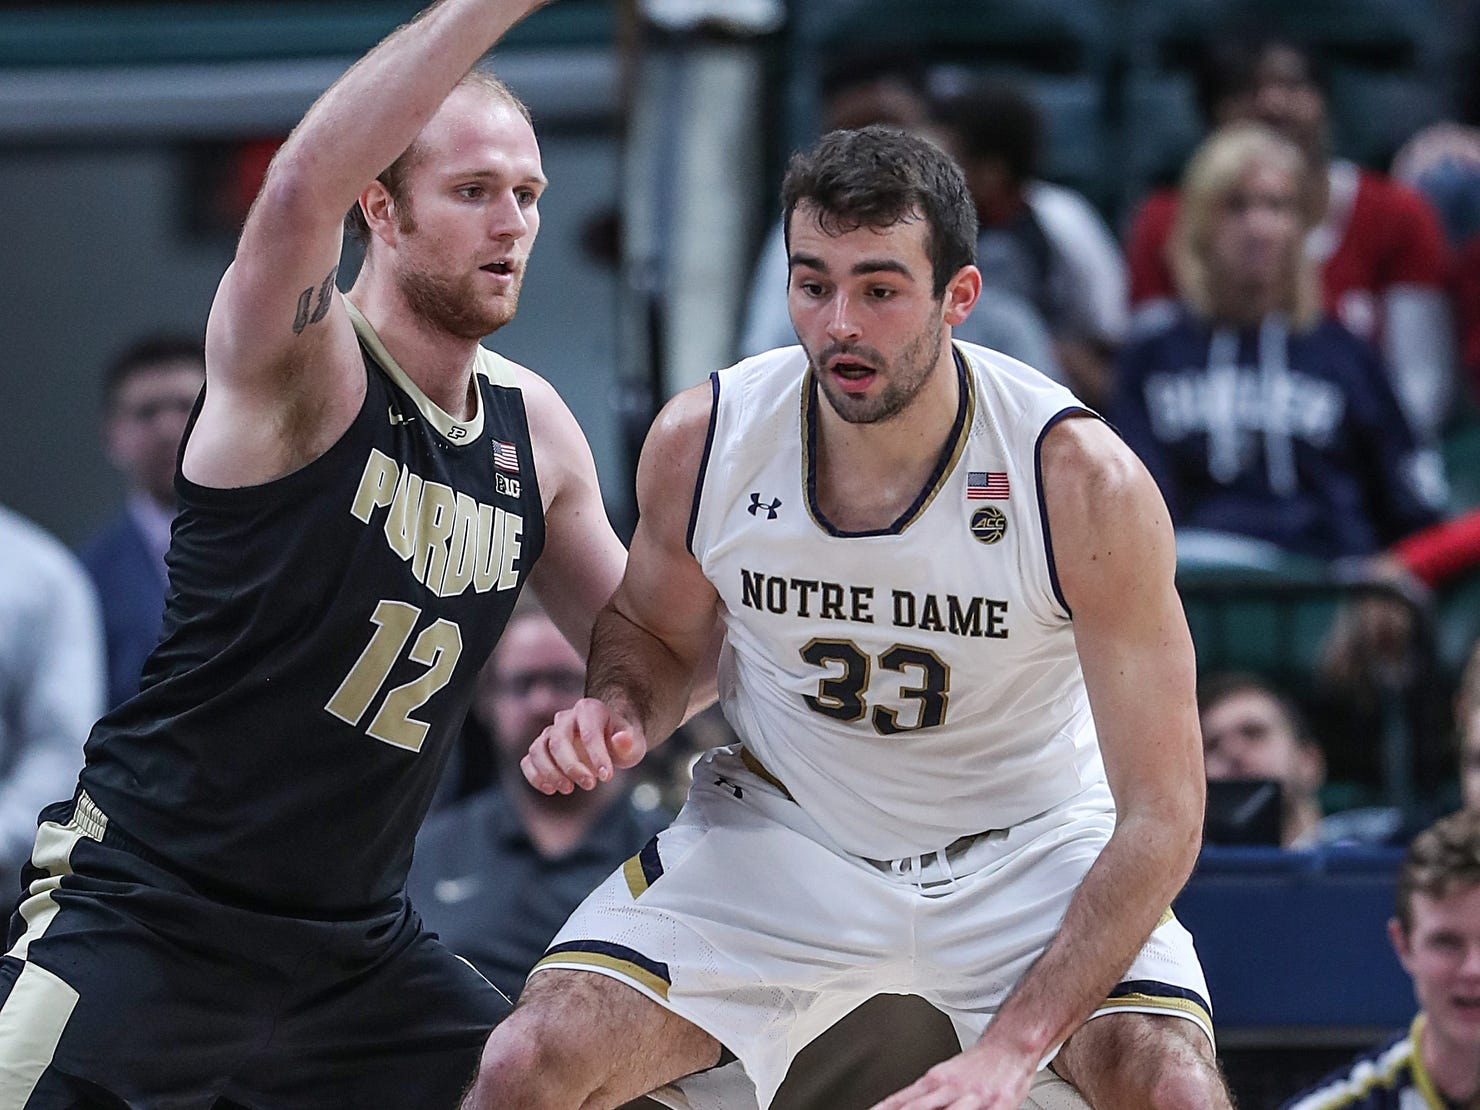 Purdue Boilermakers forward Evan Boudreaux (12) guards Notre Dame Fighting Irish forward John Mooney (33) in the second half of the Crossroads Classic game between Purdue and Notre Dame at Bankers Life Fieldhouse in Indiananpolis, Saturday, Dec. 15, 2018. Notre Dame won, 88-80.